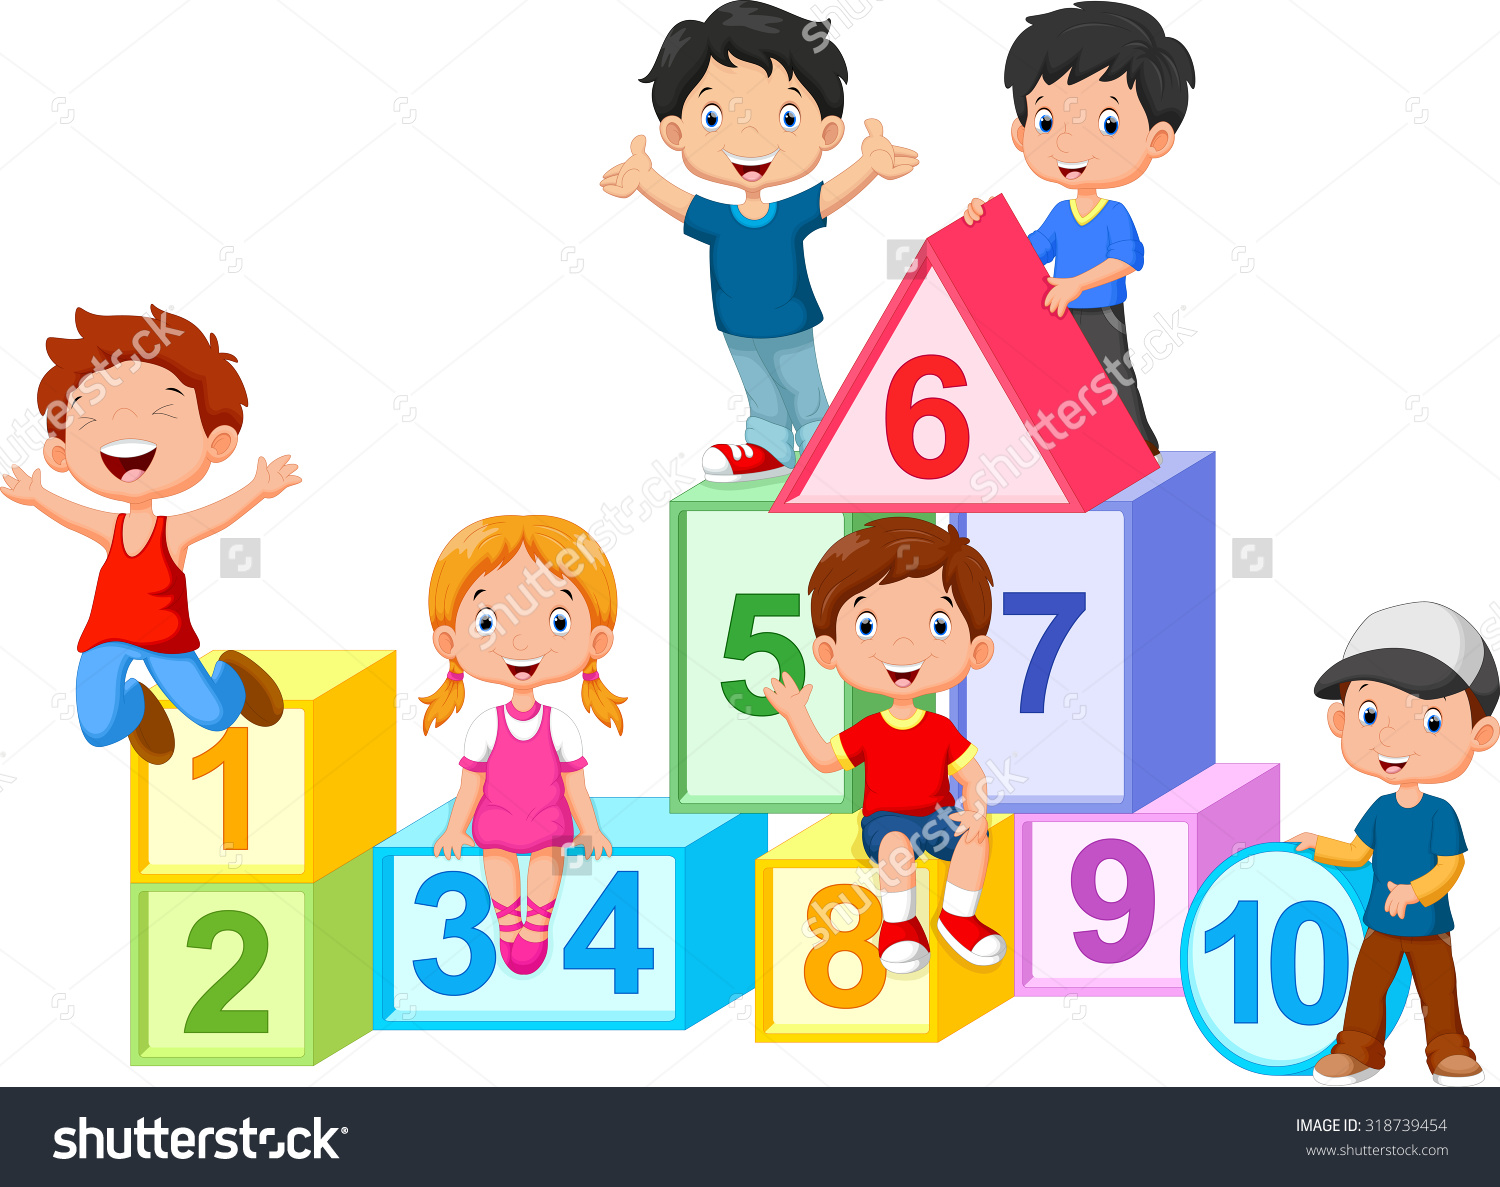 Kids with numbers clipart black and white Kids with numbers clipart - ClipartFest black and white